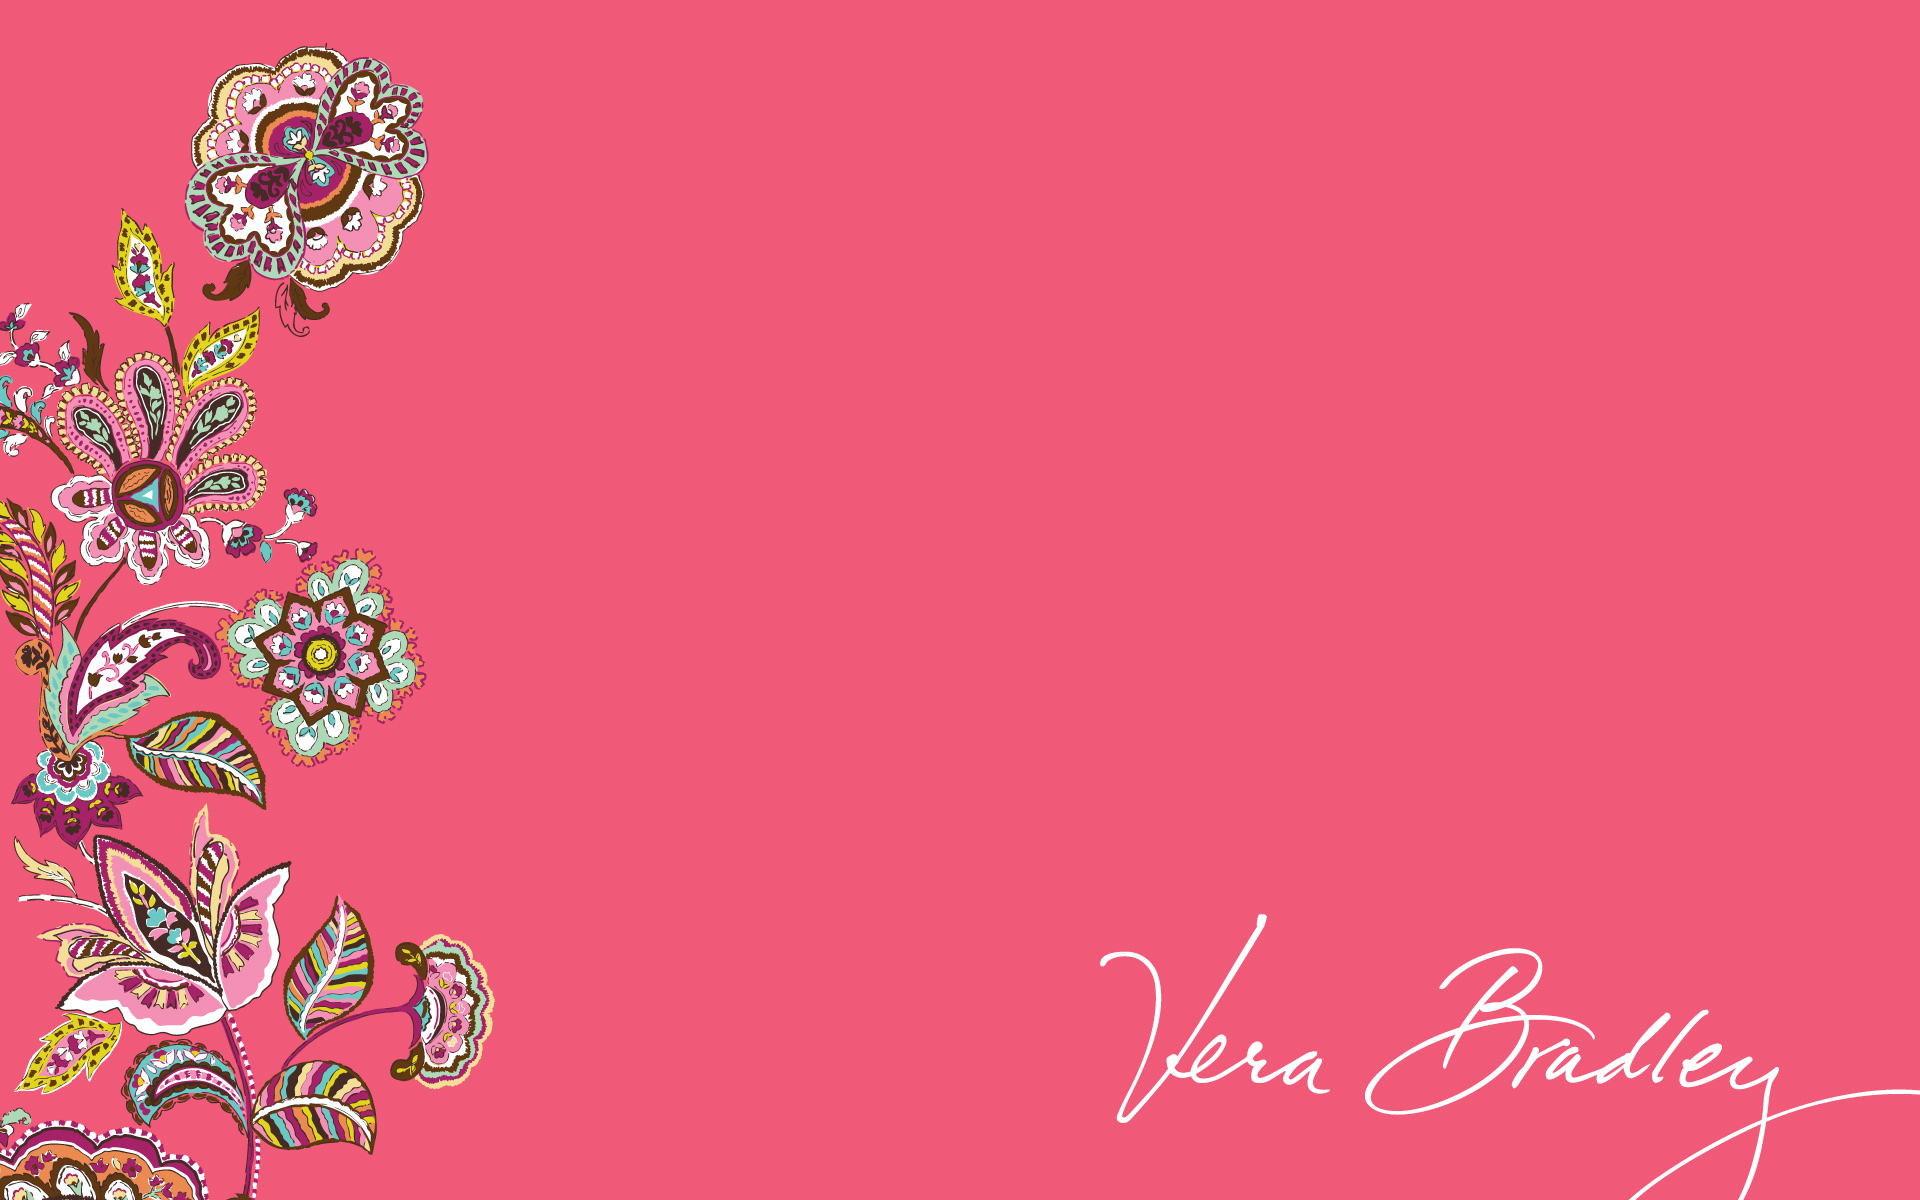 Vb Wallpapers Vera Bradley Wallpaper 35126656 Fanpop